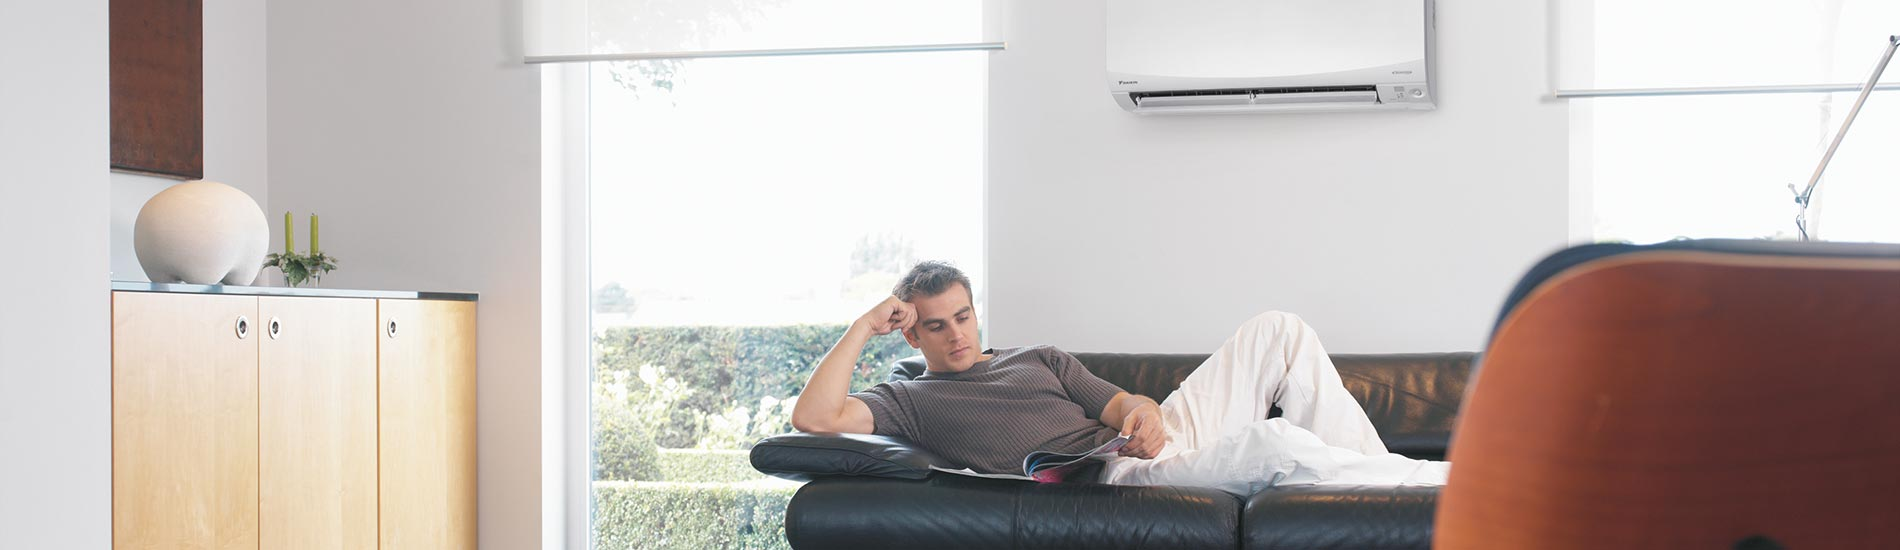 Do you have Reverse Cycle Air Conditioning In Your Home?